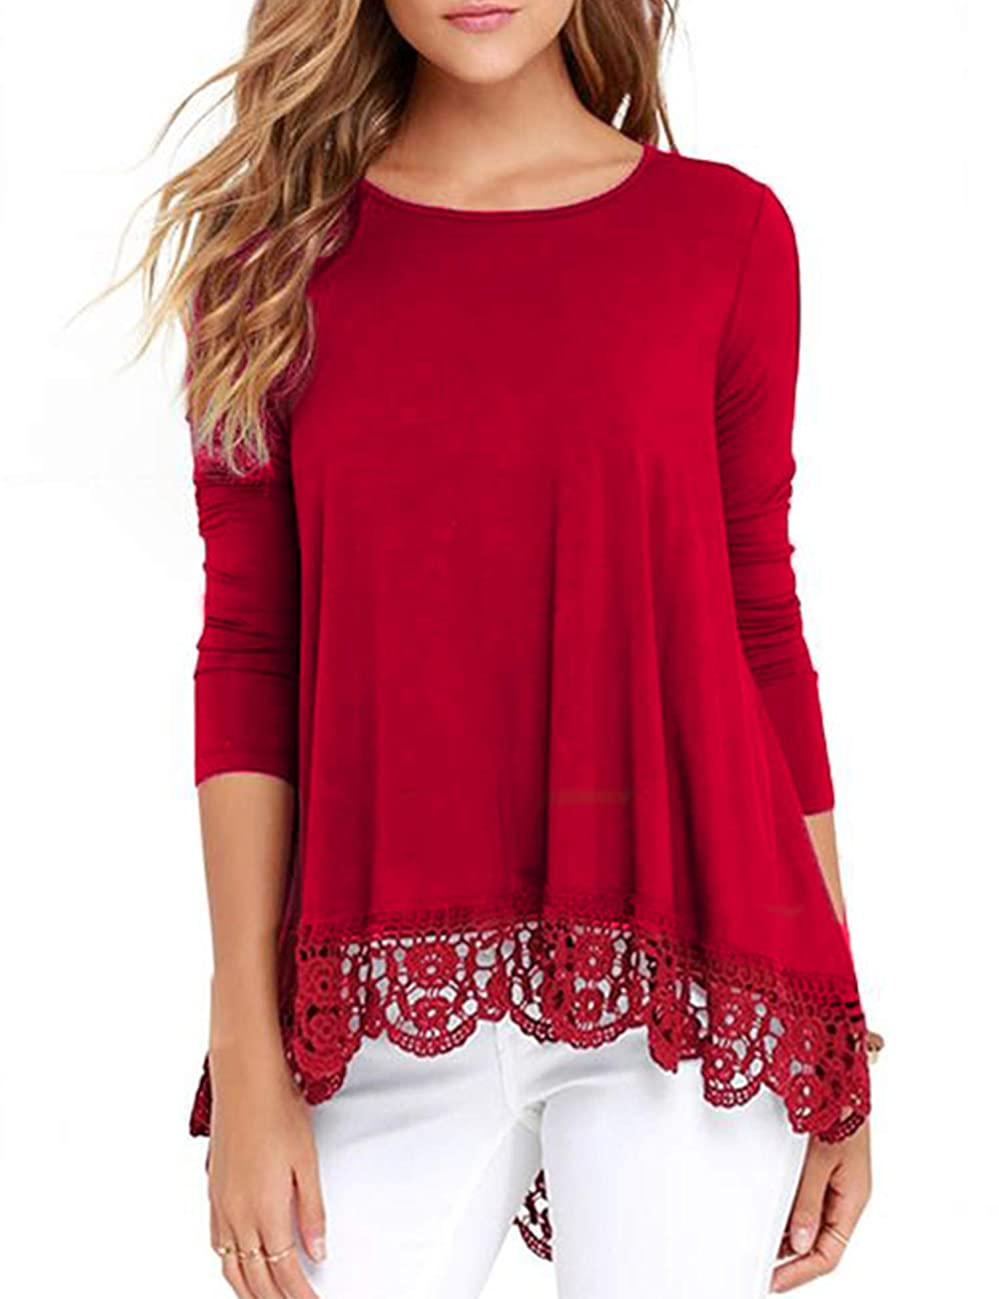 RAGEMALL Women's Tops Long Sleeve Lace Trim O-Neck A-Line Tunic Blouse Tops for Women